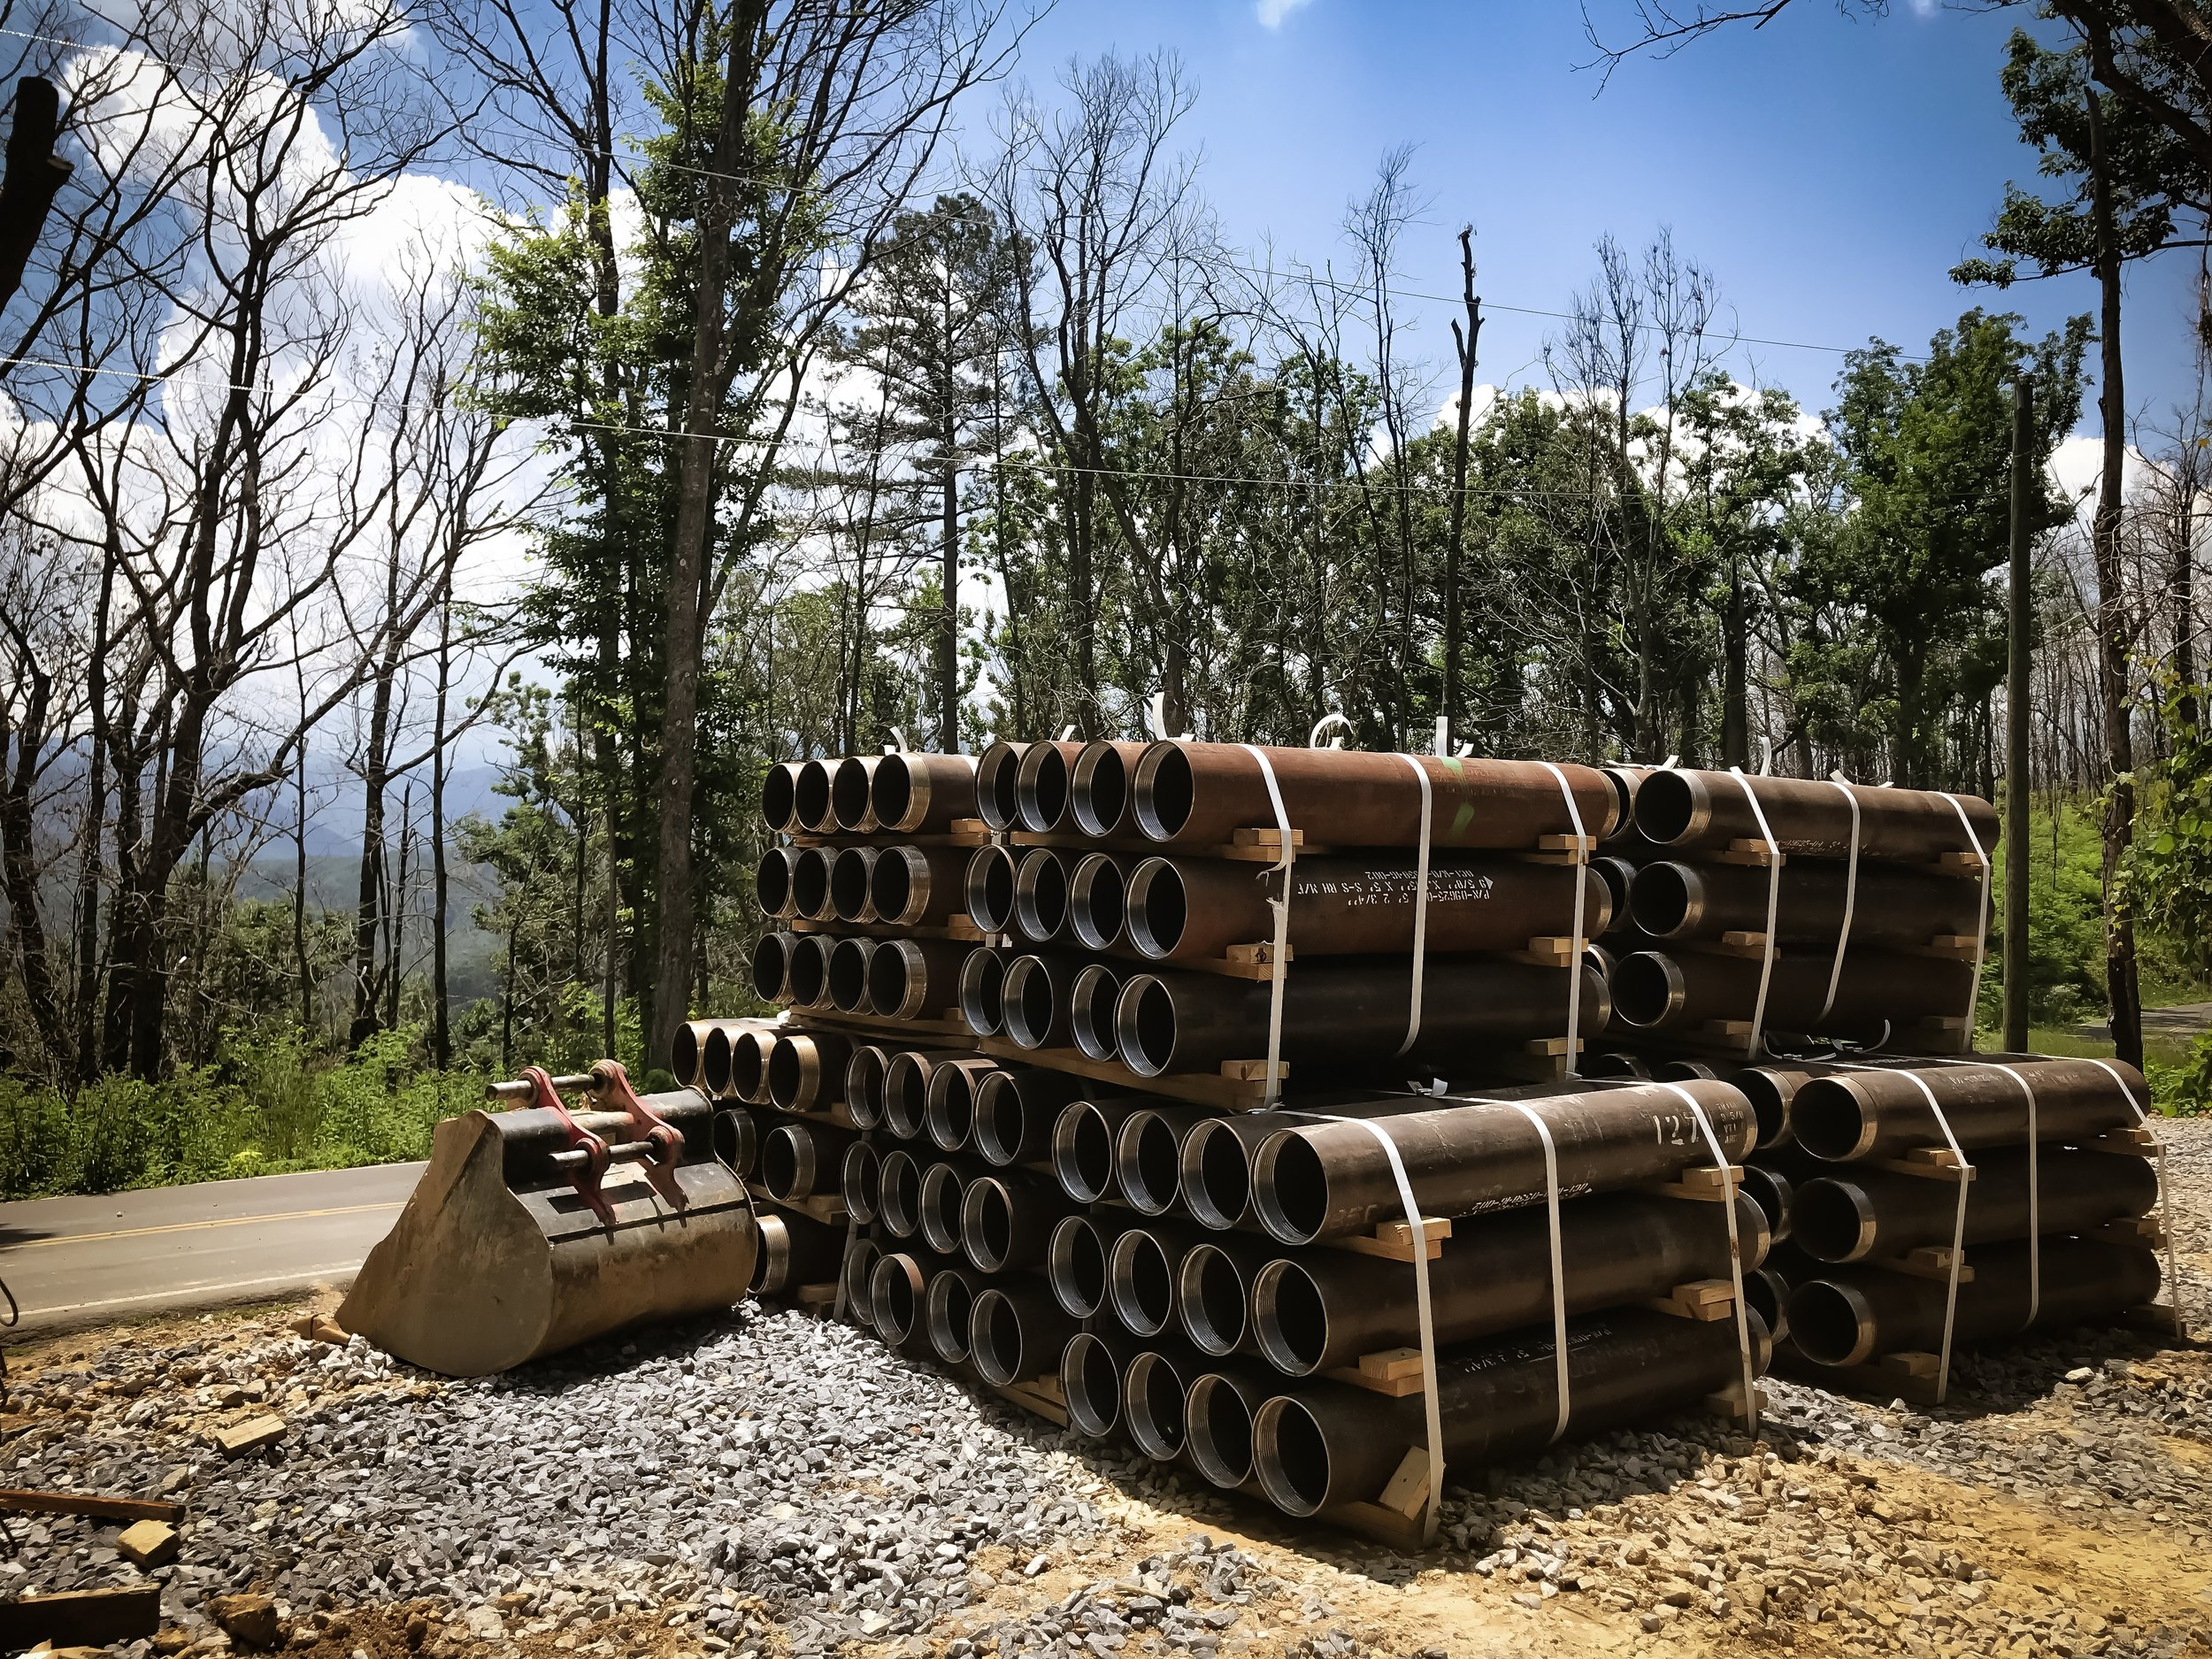 Some steel micropile casings in the lay down area in Gatlinburg, waiting to be put to use.